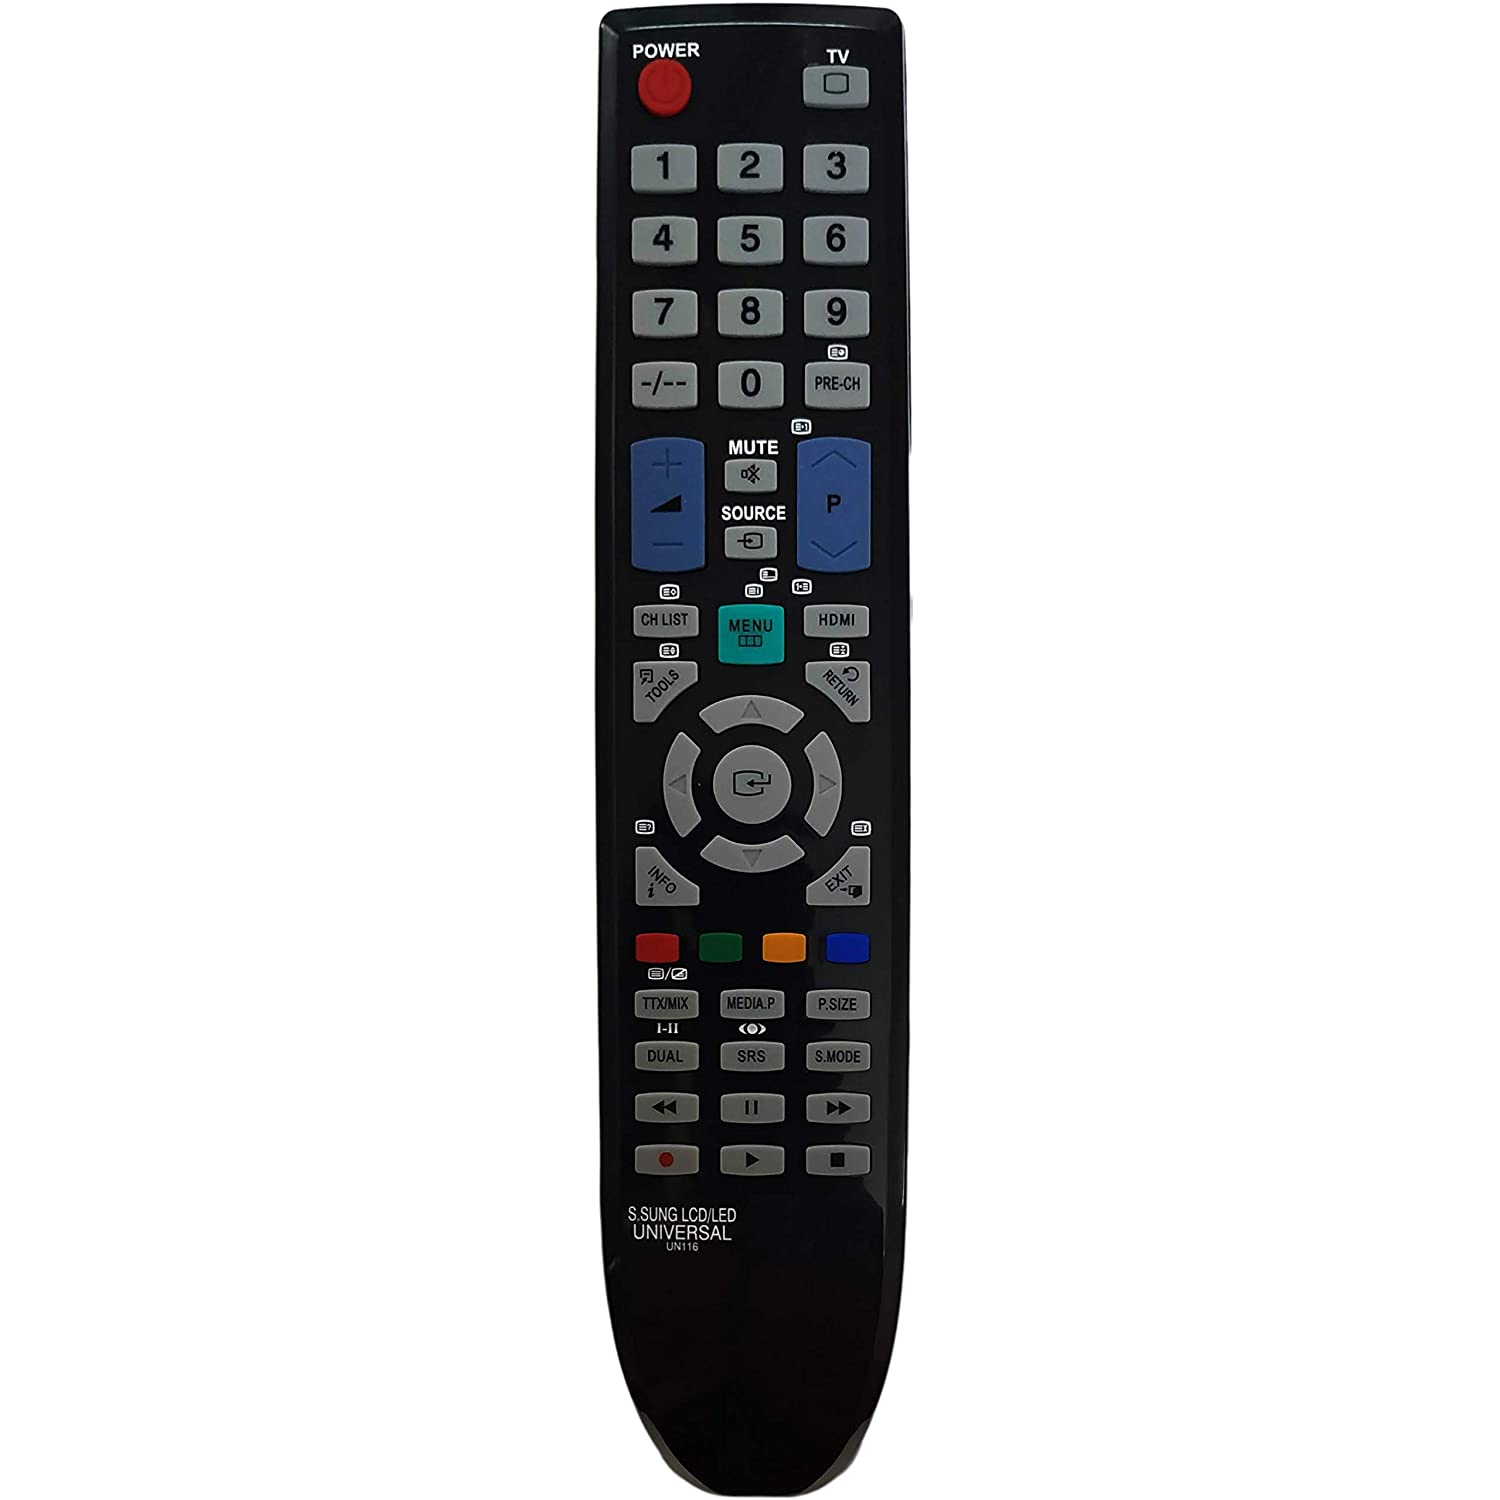 UNIVERSAL REMOTE CONTROL FOR SAMSUNG TV - REPLACEMENT - WITHOUT SETUP